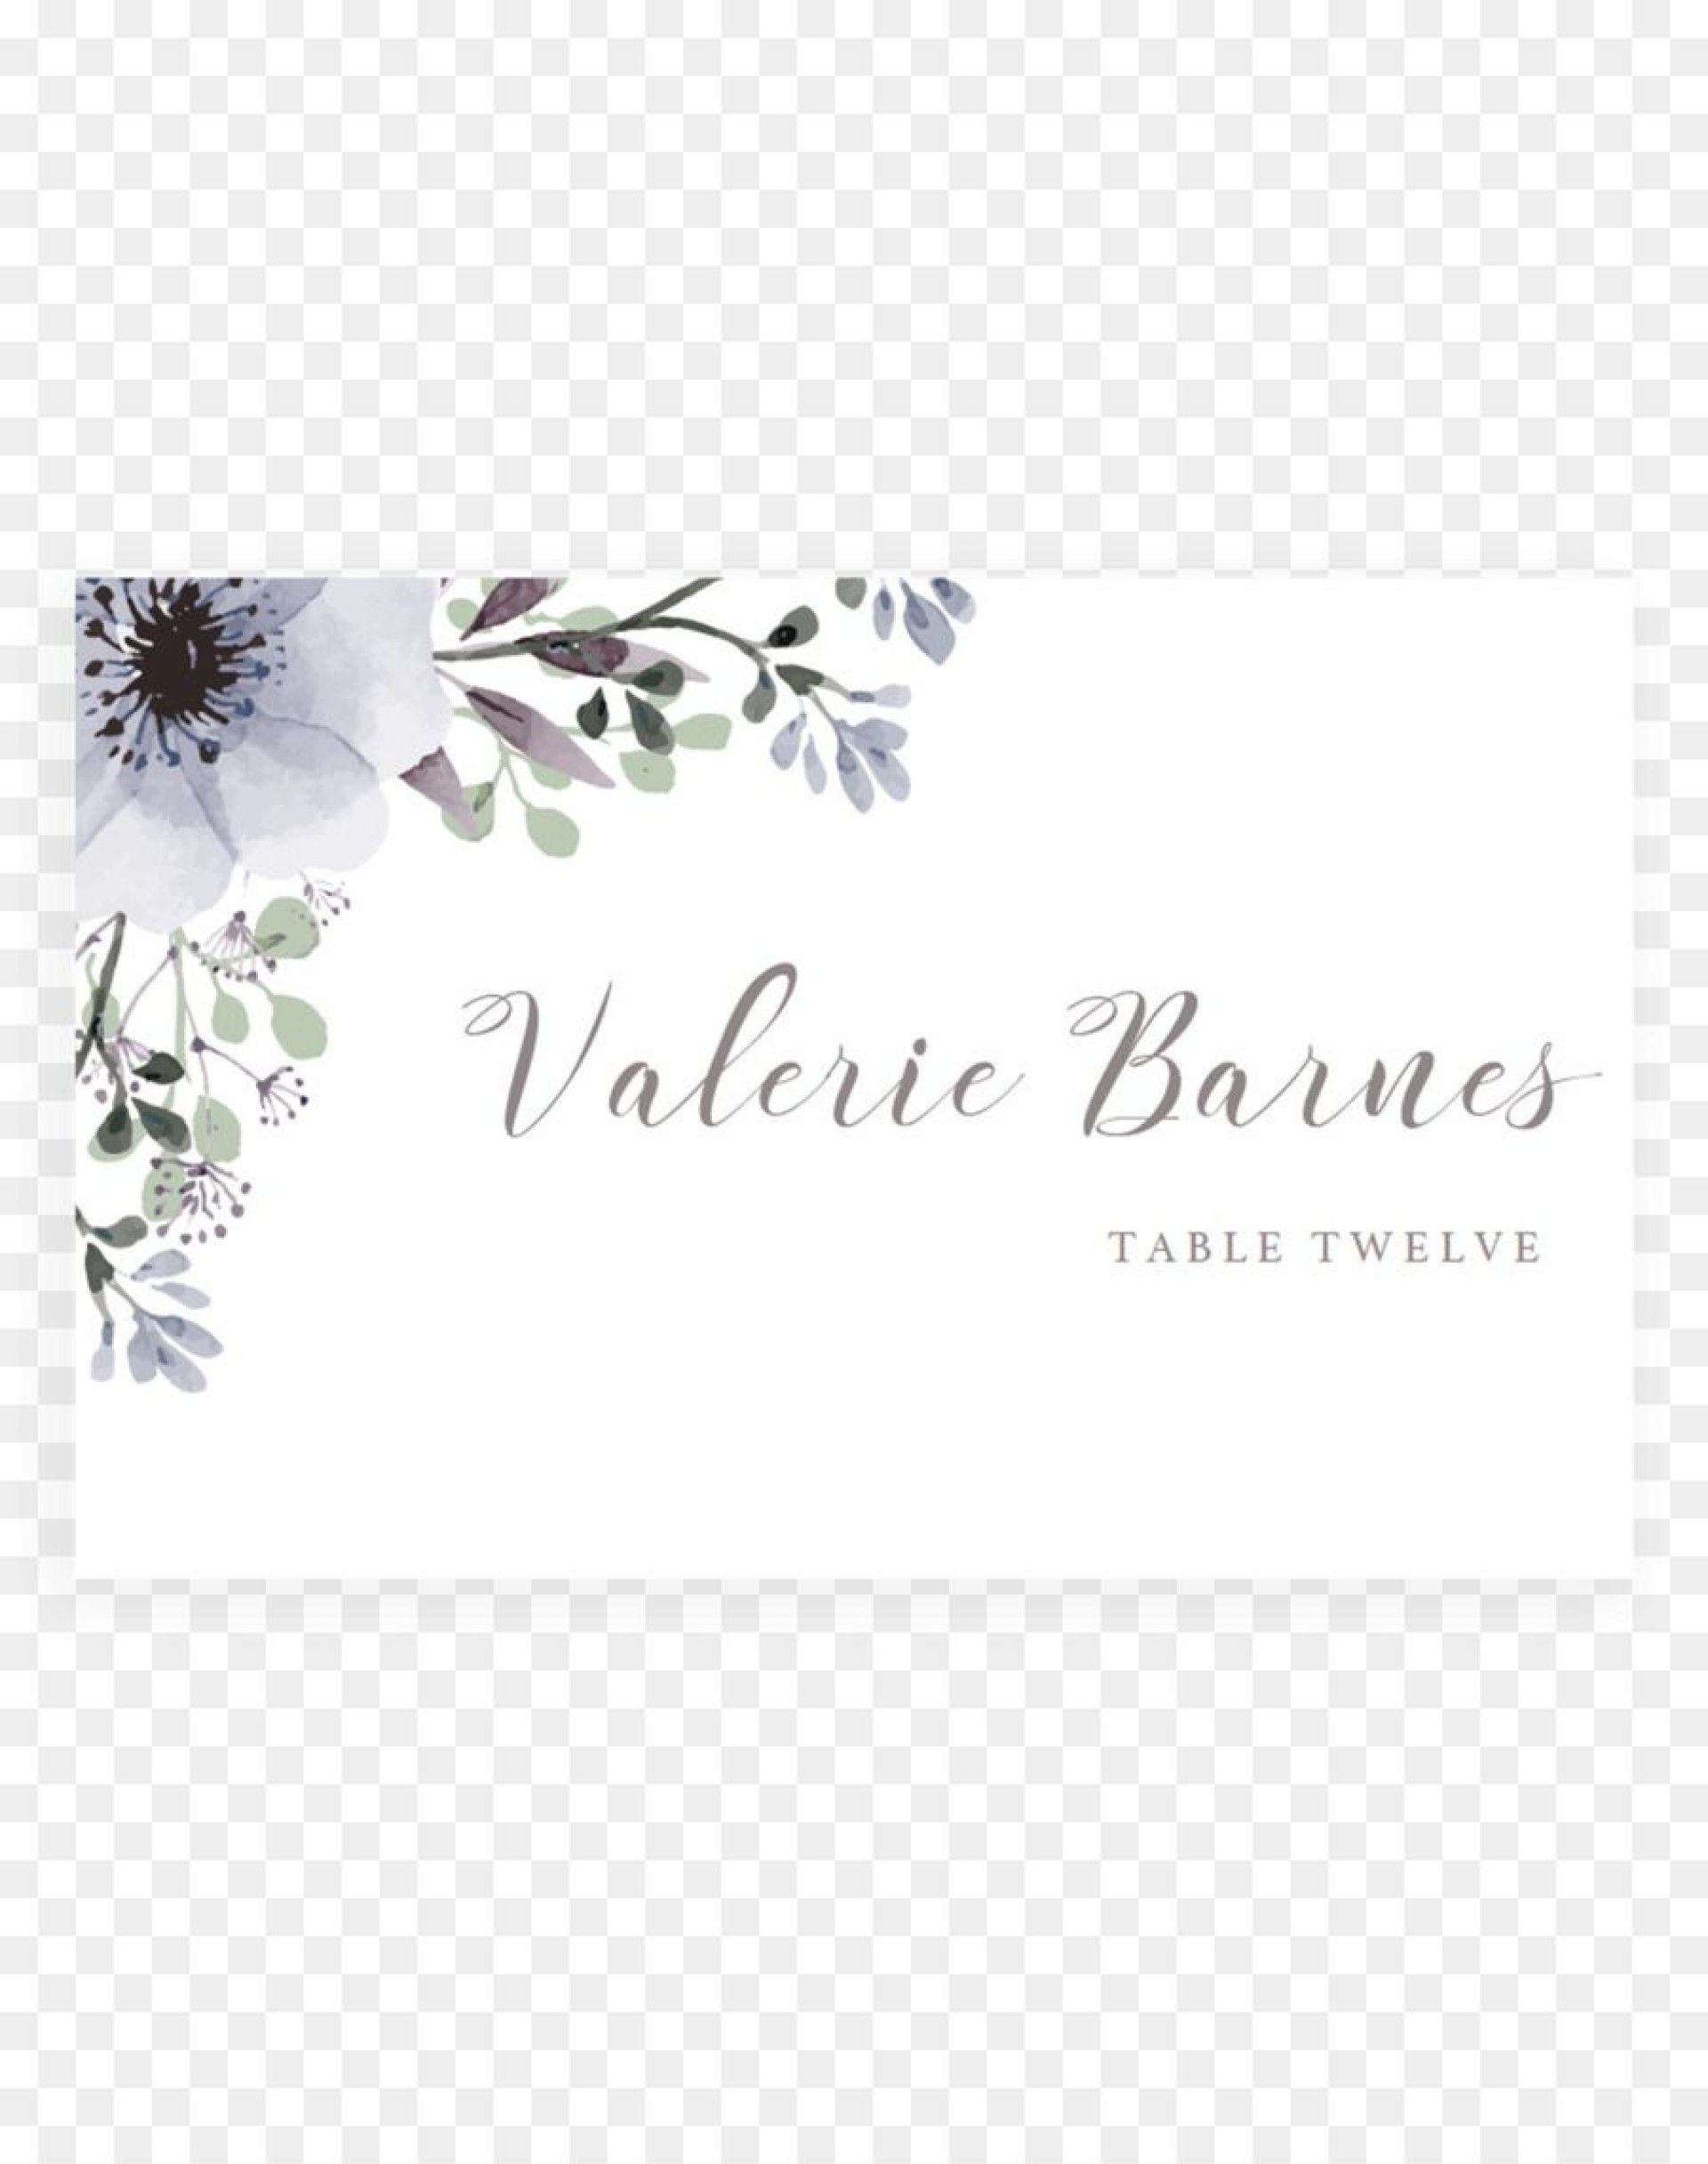 009 Unusual Free Place Card Template High Resolution  Wedding Download Christma Name Word1920